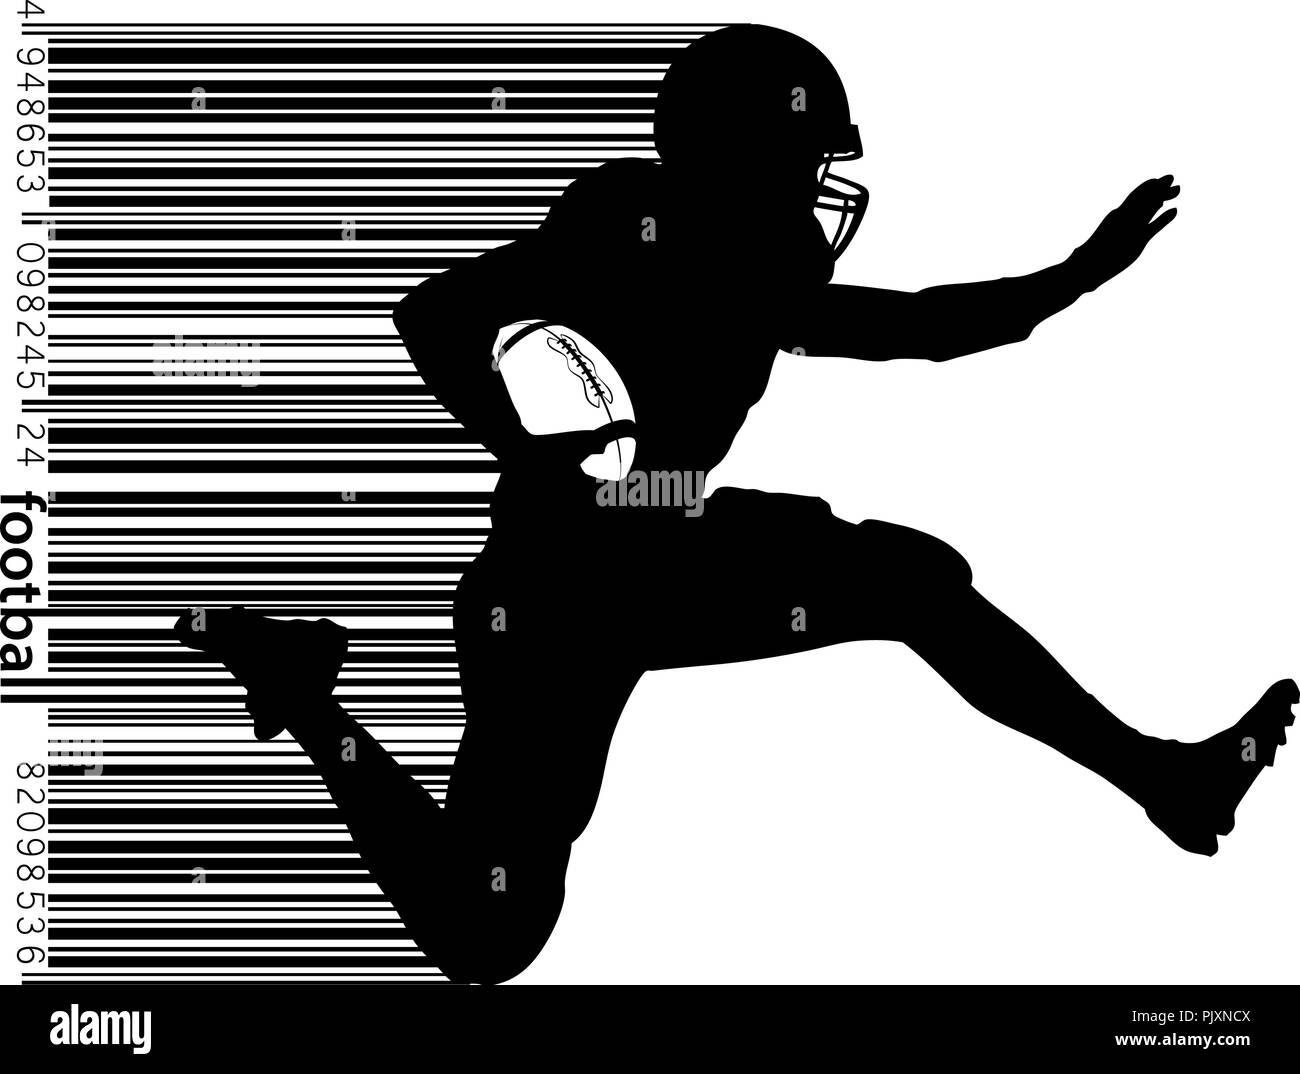 silhouette of a football player. Set. Background and text on a separate layer, color can be changed in one click. Rugby. American football. Vector ill - Stock Image